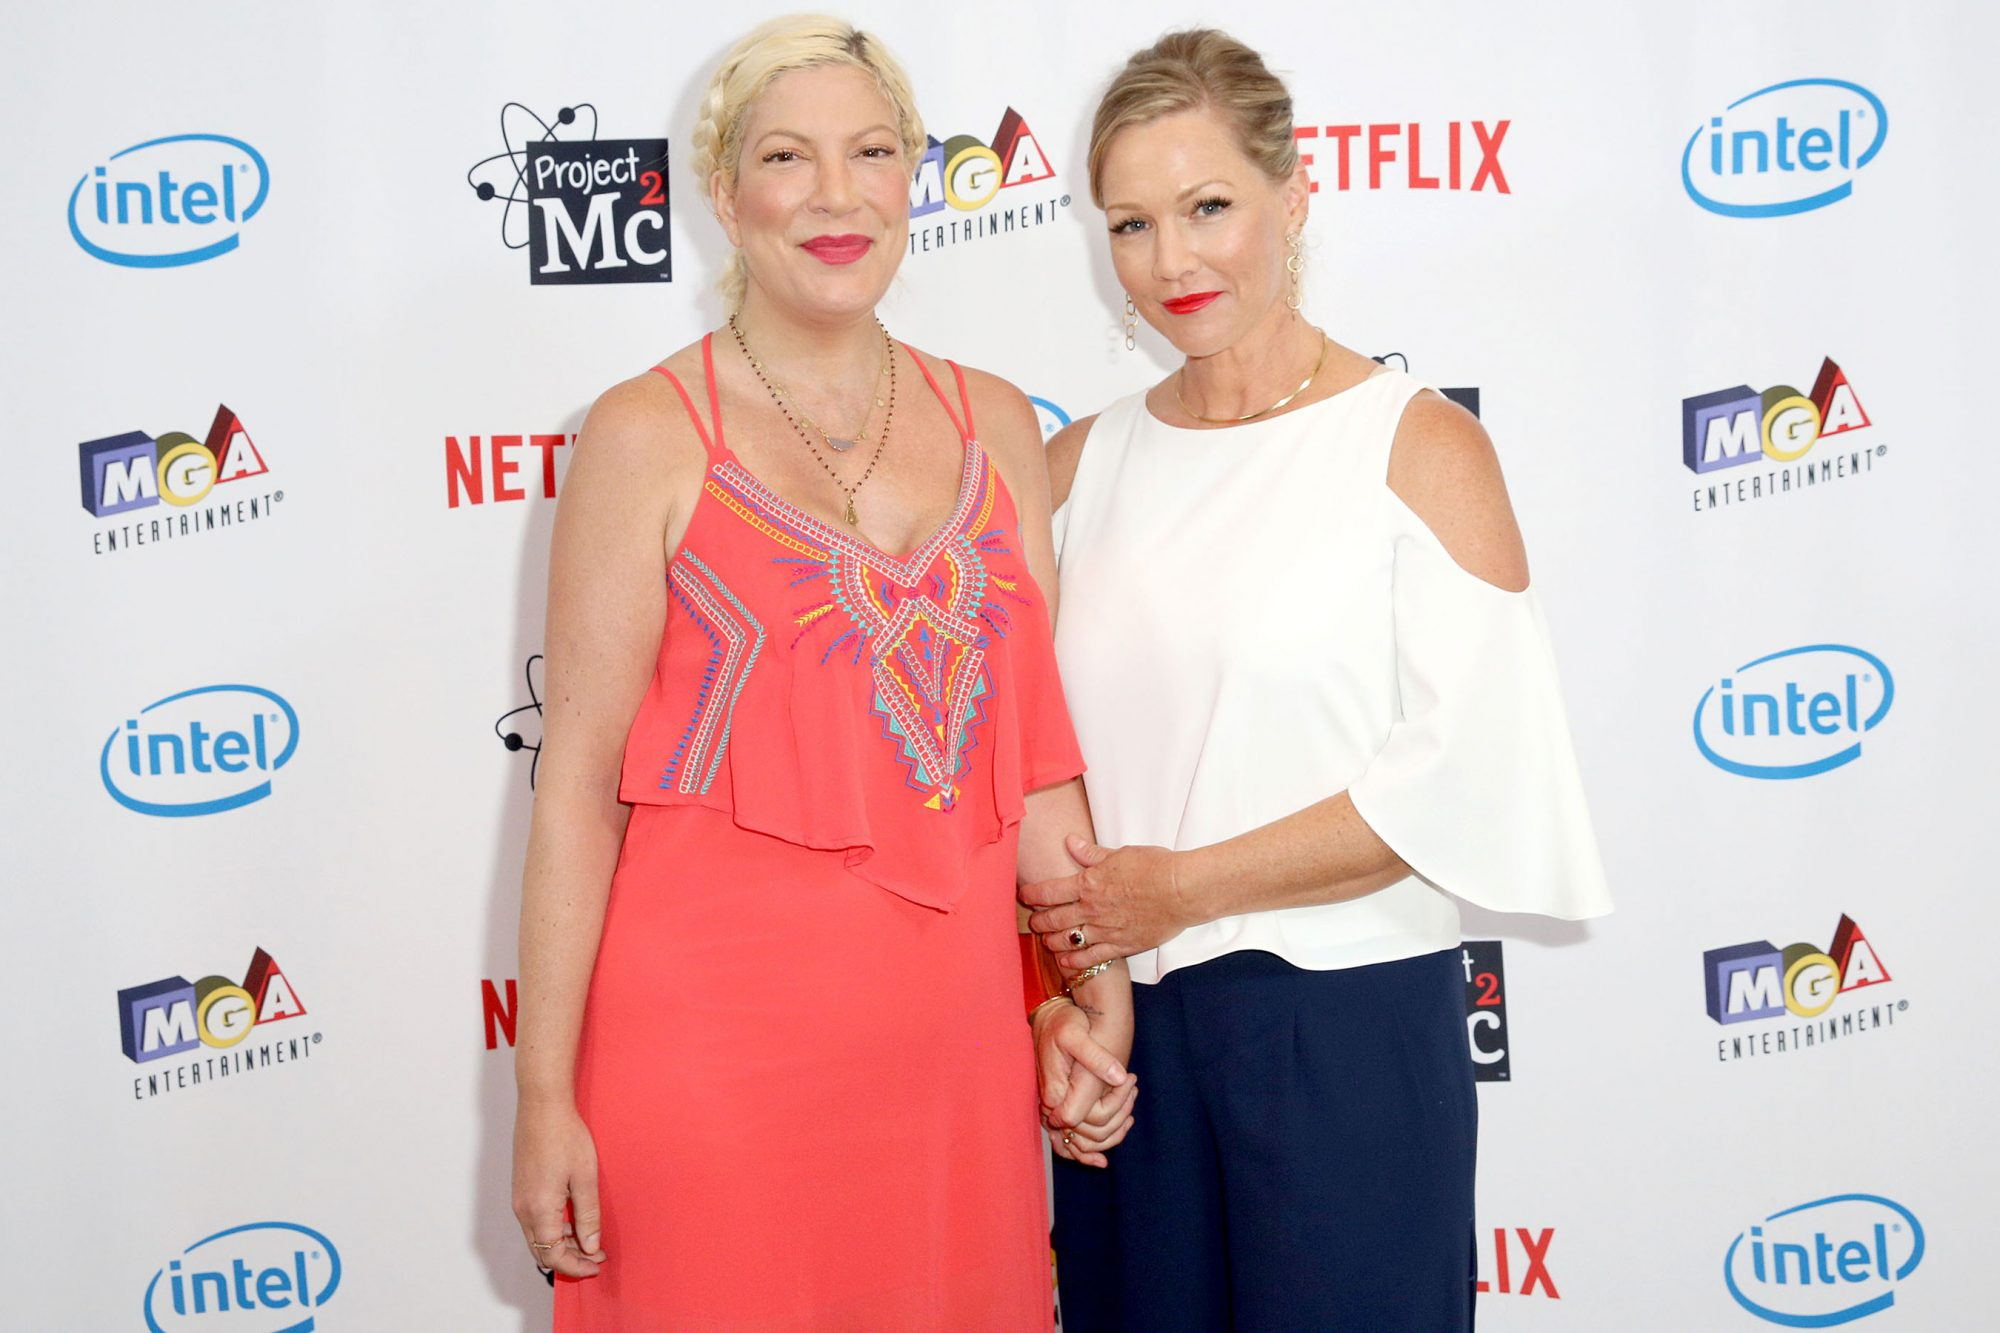 "WEST HOLLYWOOD, CA - SEPTEMBER 07: Actresses Tori Spelling and Jennie Garth attend the Netflix Series ""Project Mc2"" Part 5 Premiere hosted by Jennie Garth and MGA Entertainment at The London West Hollywood on September 7, 2017 in West Hollywood, California. (Photo by Rachel Murray/Getty Images for MGA Entertainment )"